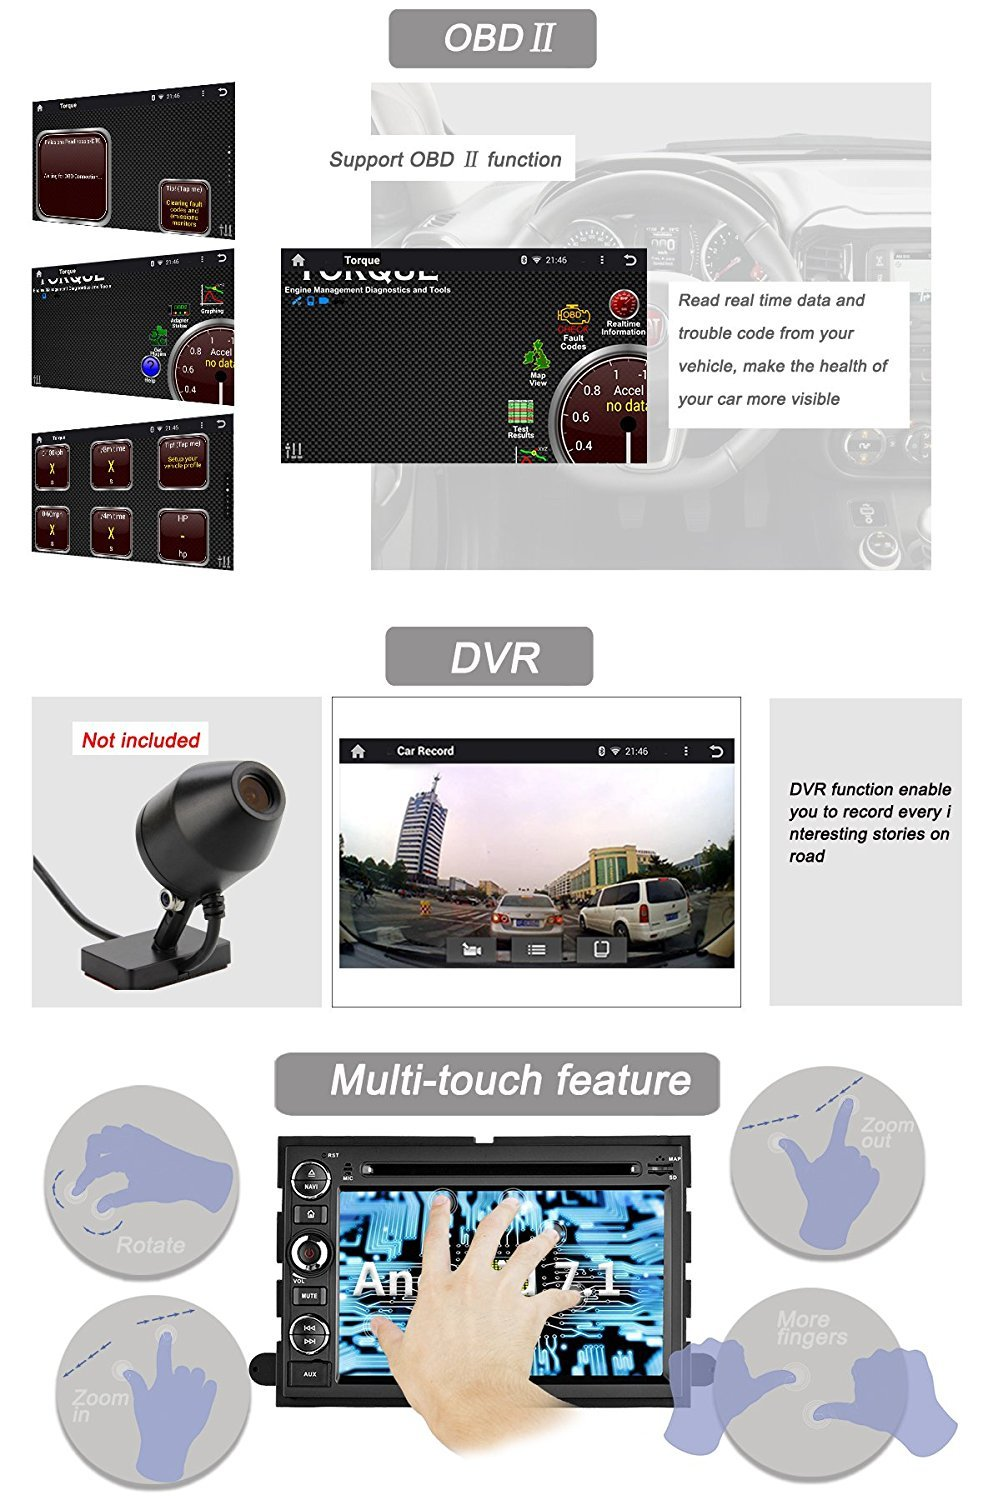 Yinuo Quad Core 16gb 7 Inch Android 71 Double Din Car Amazoncom Stereo Install Dash Kit Ford 500 06 2006 Radio Wiring Dvd Player In Gps Navigation For F150 2004 2008 Fusion